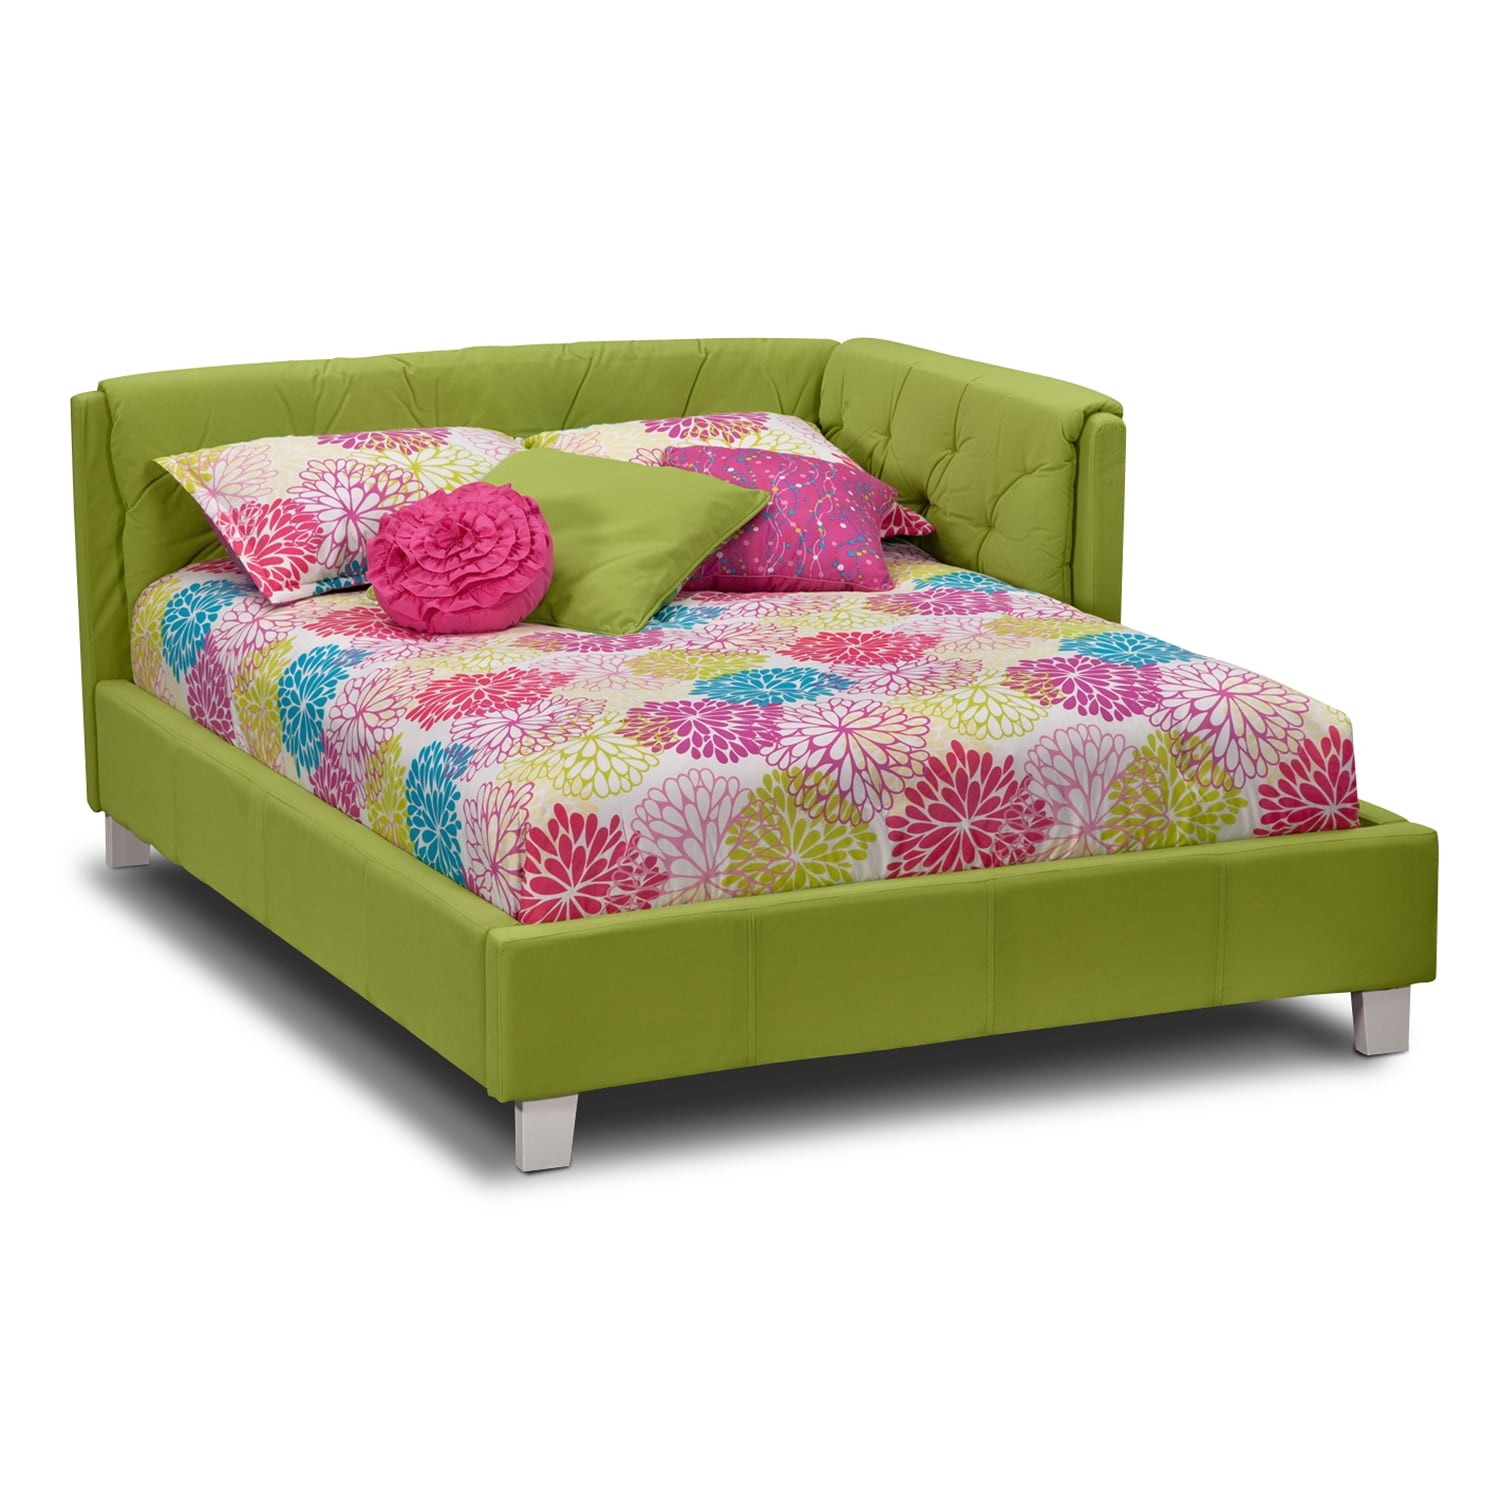 Corner Sofa Bed Under 300: Jordan Full Corner Bed - Green